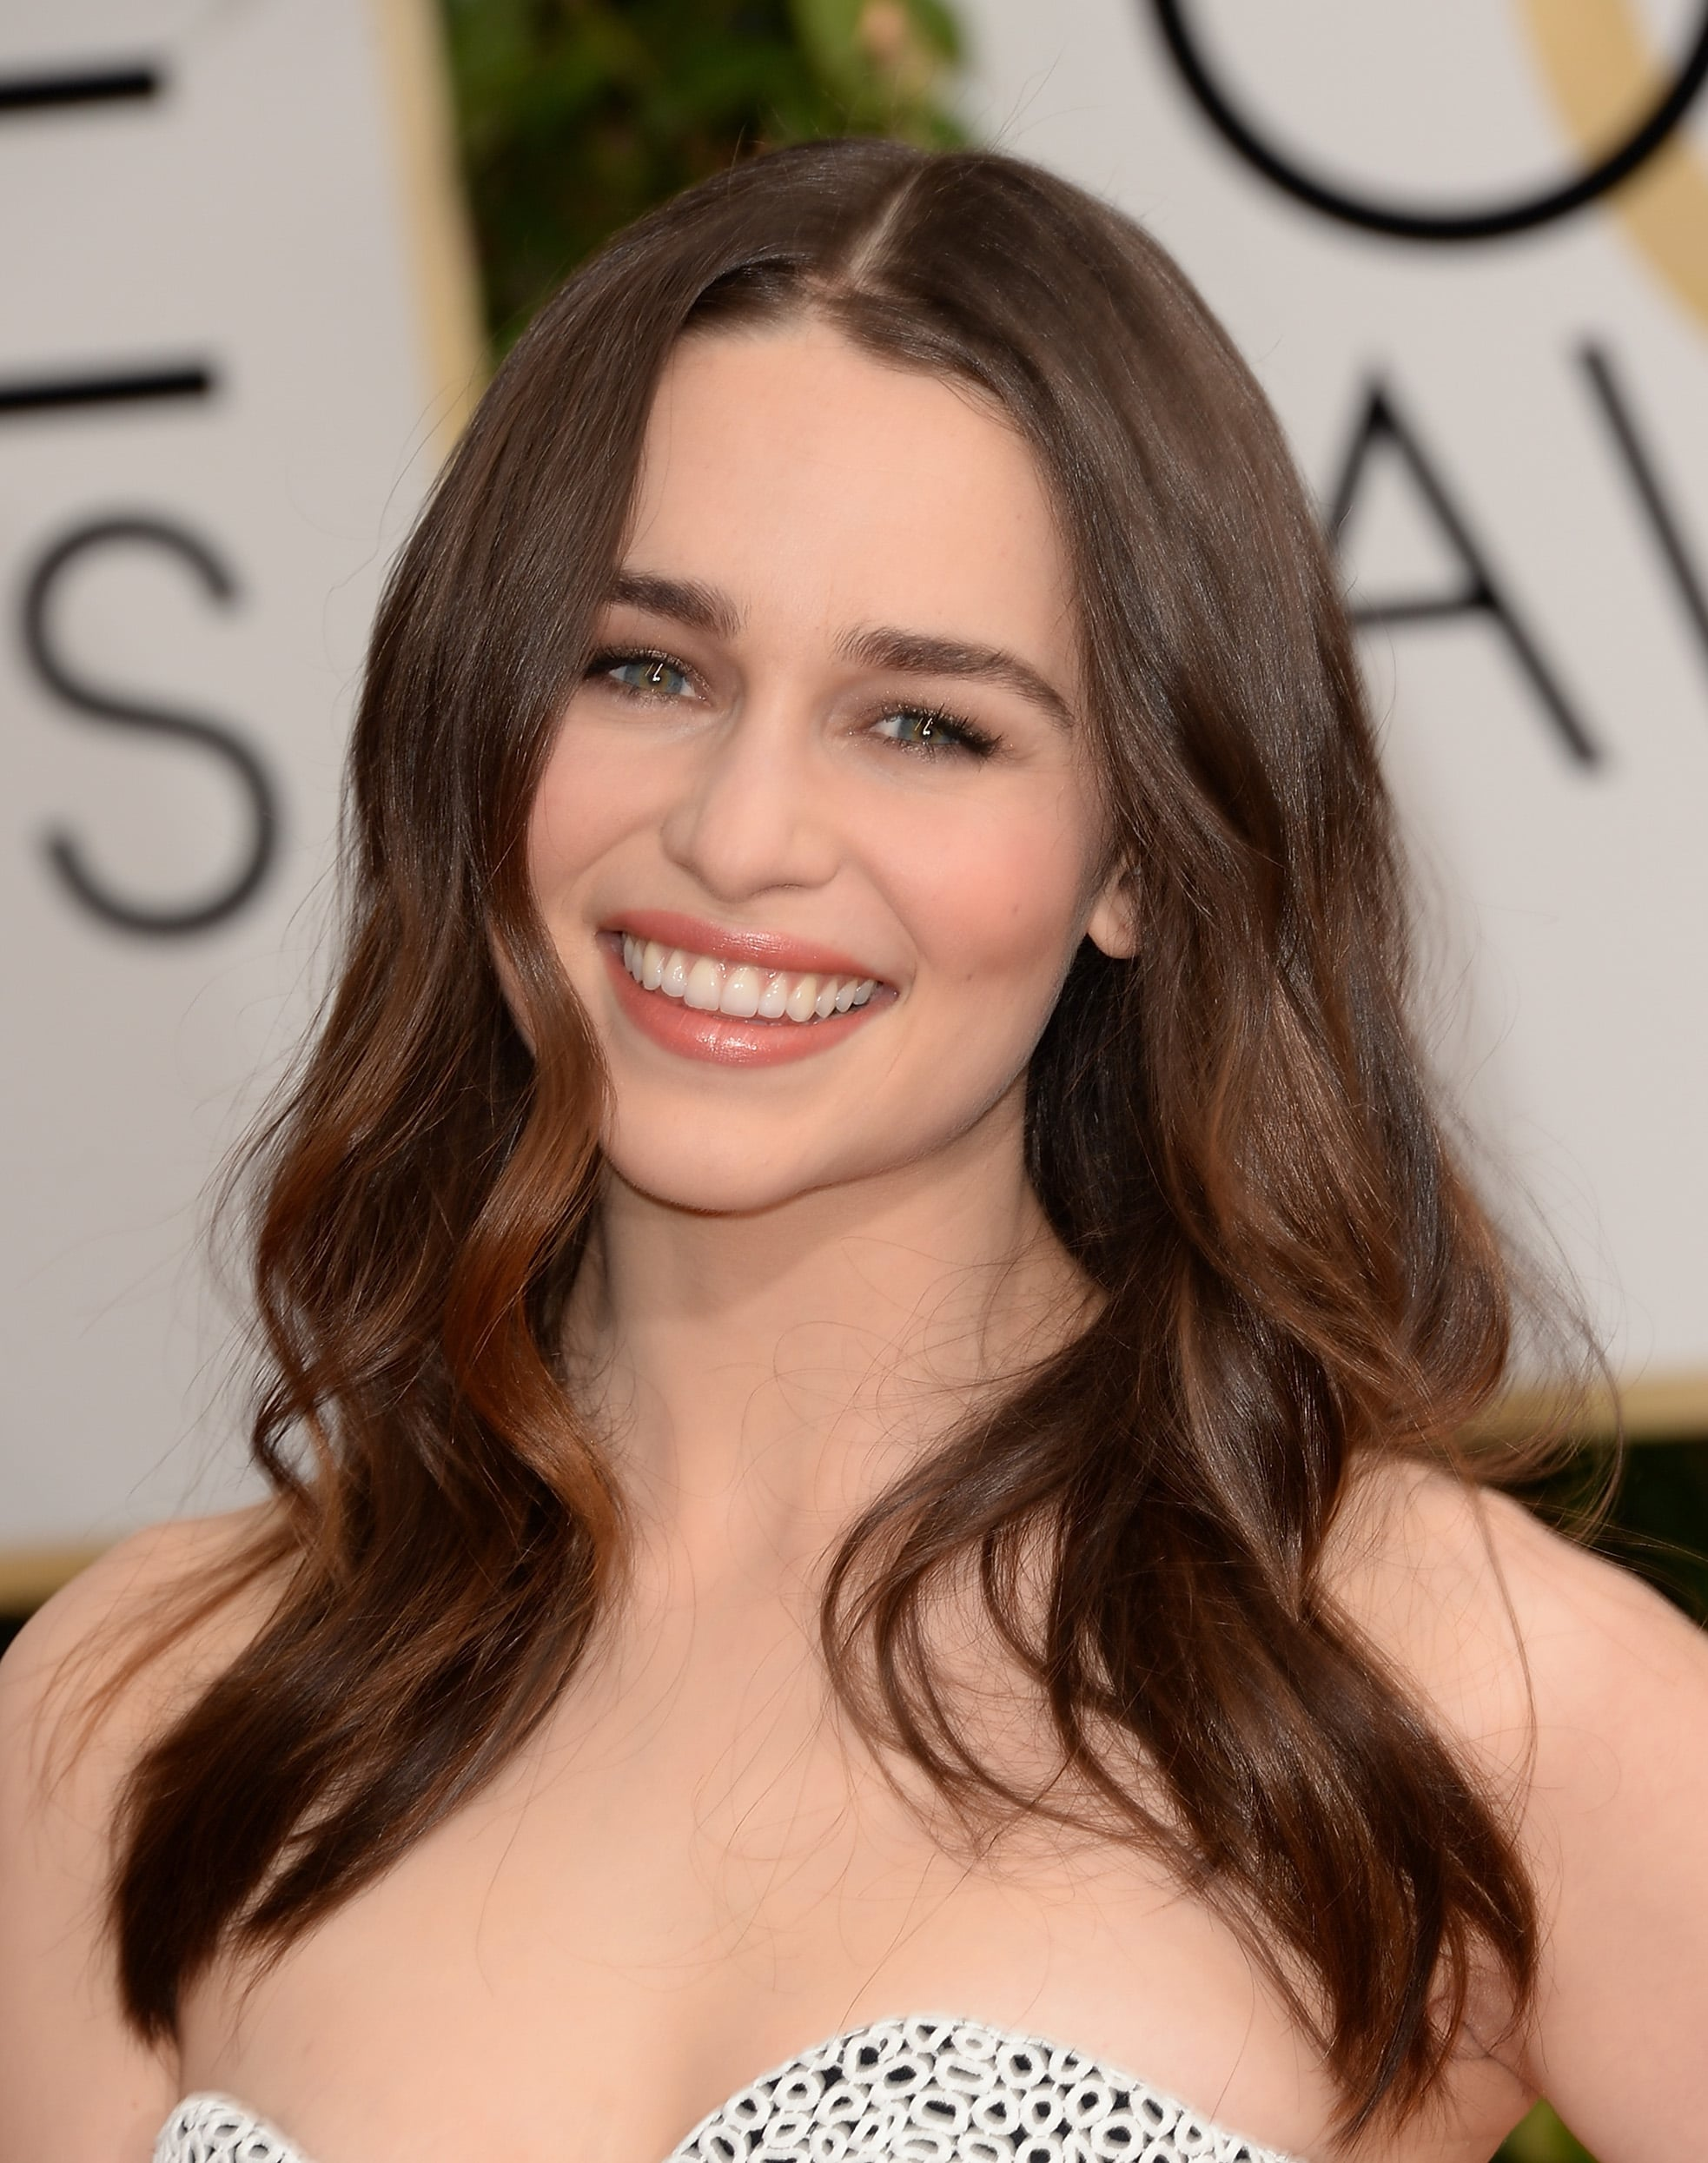 """""""I was so inspired by Emilia's Proenza Schouler gown,"""" Dove celebrity hairstylist Mark Townsend said. """"The mix of embroideries looked like movement, so I wanted her hair to move beautifully as well."""" He prepped her hair adding a few drops of the new Dove Pure Care Dry Oil Nourishing Treatment ($11) in her damp hair and combing it through. Next, he sprayed Dove Oxygen Moisture Root Lift Spray ($6) to the roots and blow-dried strands with a round brush. Then, he took three-inch sections of hair and wrapped each section around a 1.5-inch curling iron, because a larger barrel creates looser waves instead of tight ringlets. He finished the look with Oribe Dry Texturizing Spray ($39) for texture and Dove Pure Care Dry Oil Nourishing Treatment for shine."""